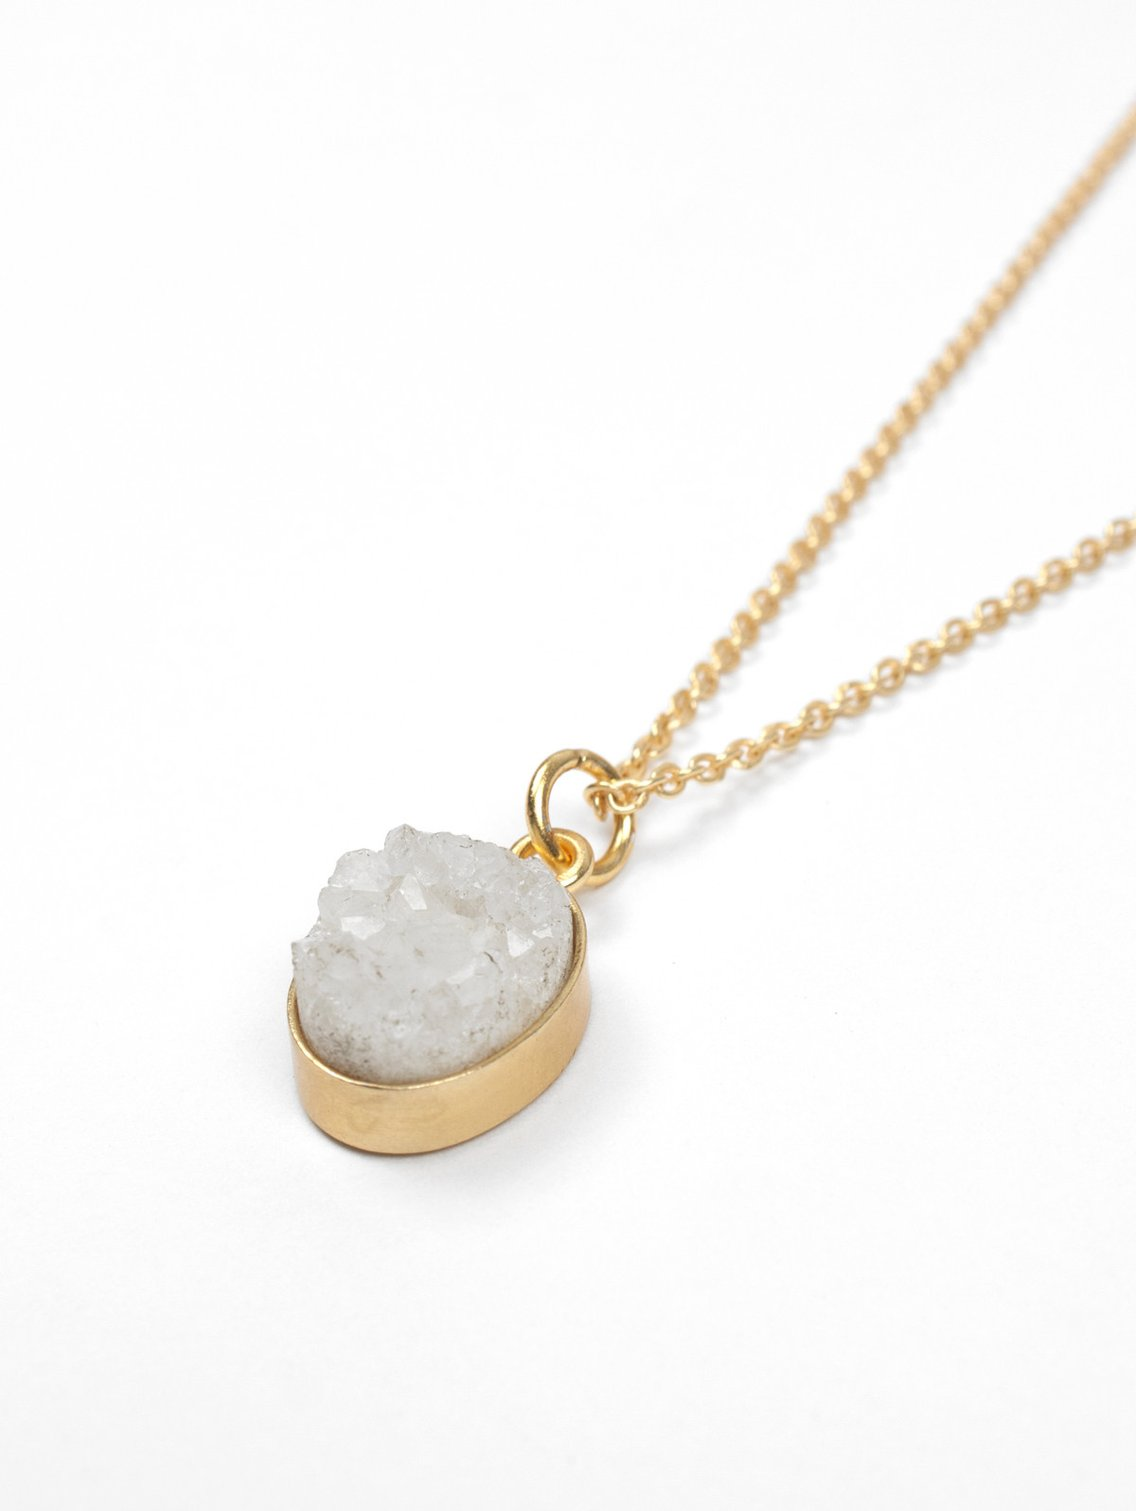 Oval Druzy Necklace - Natural